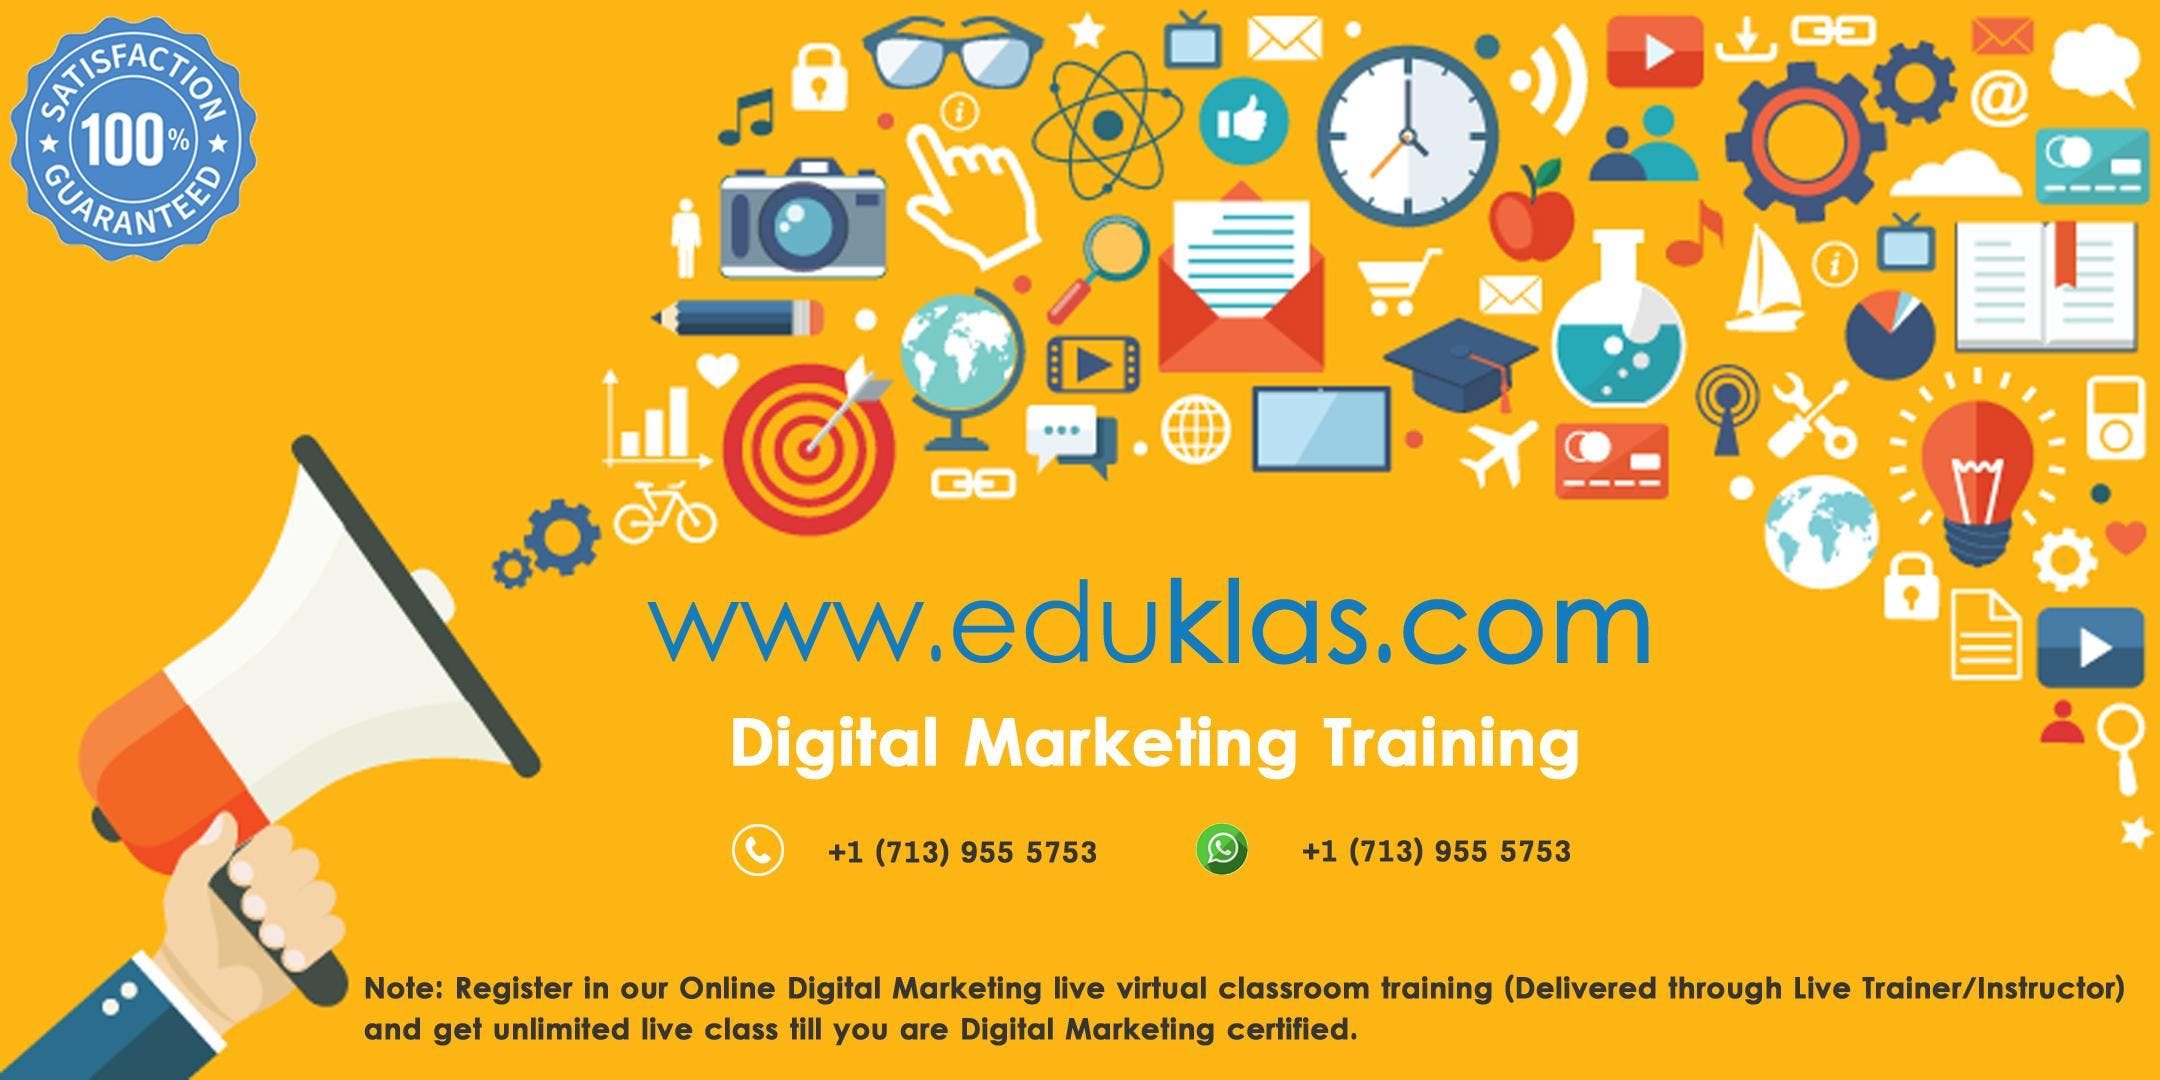 Digital Marketing Live Virtual Classroom Trai